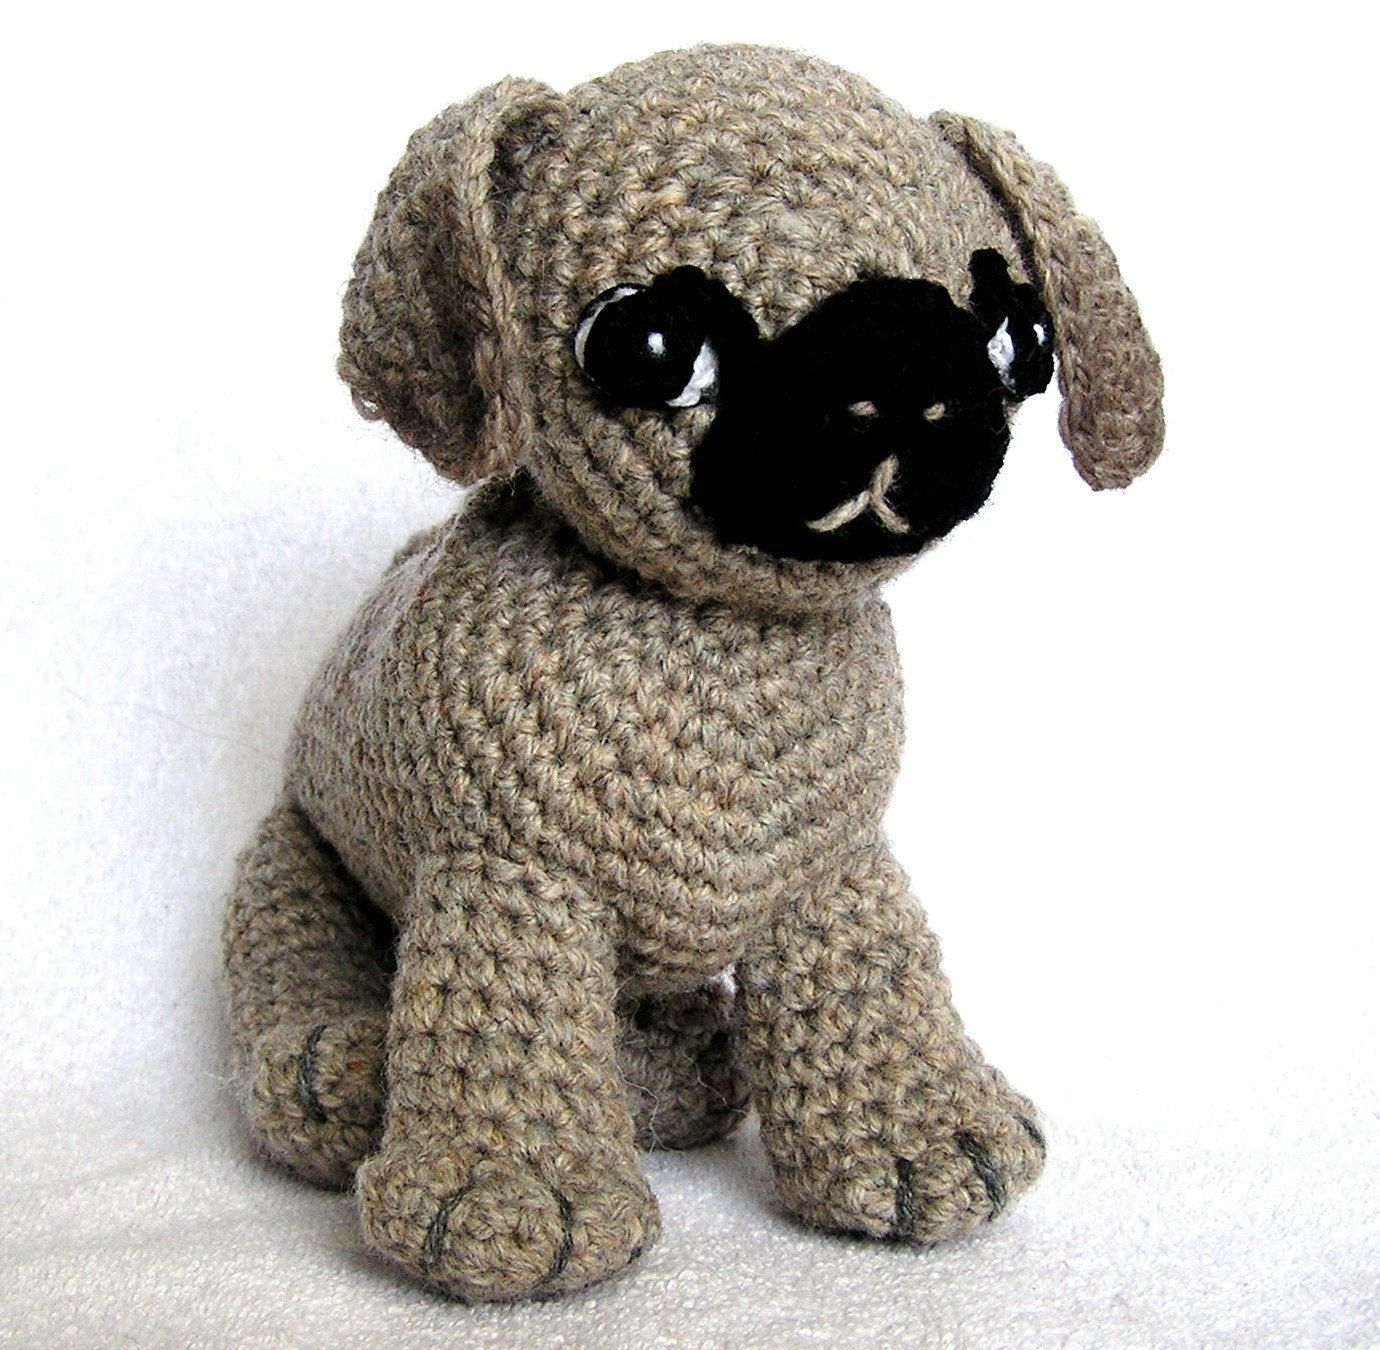 Crochet pug puggies pinterest crochet amigurumi and dog adorable crochet pug pattern on etsy bankloansurffo Choice Image